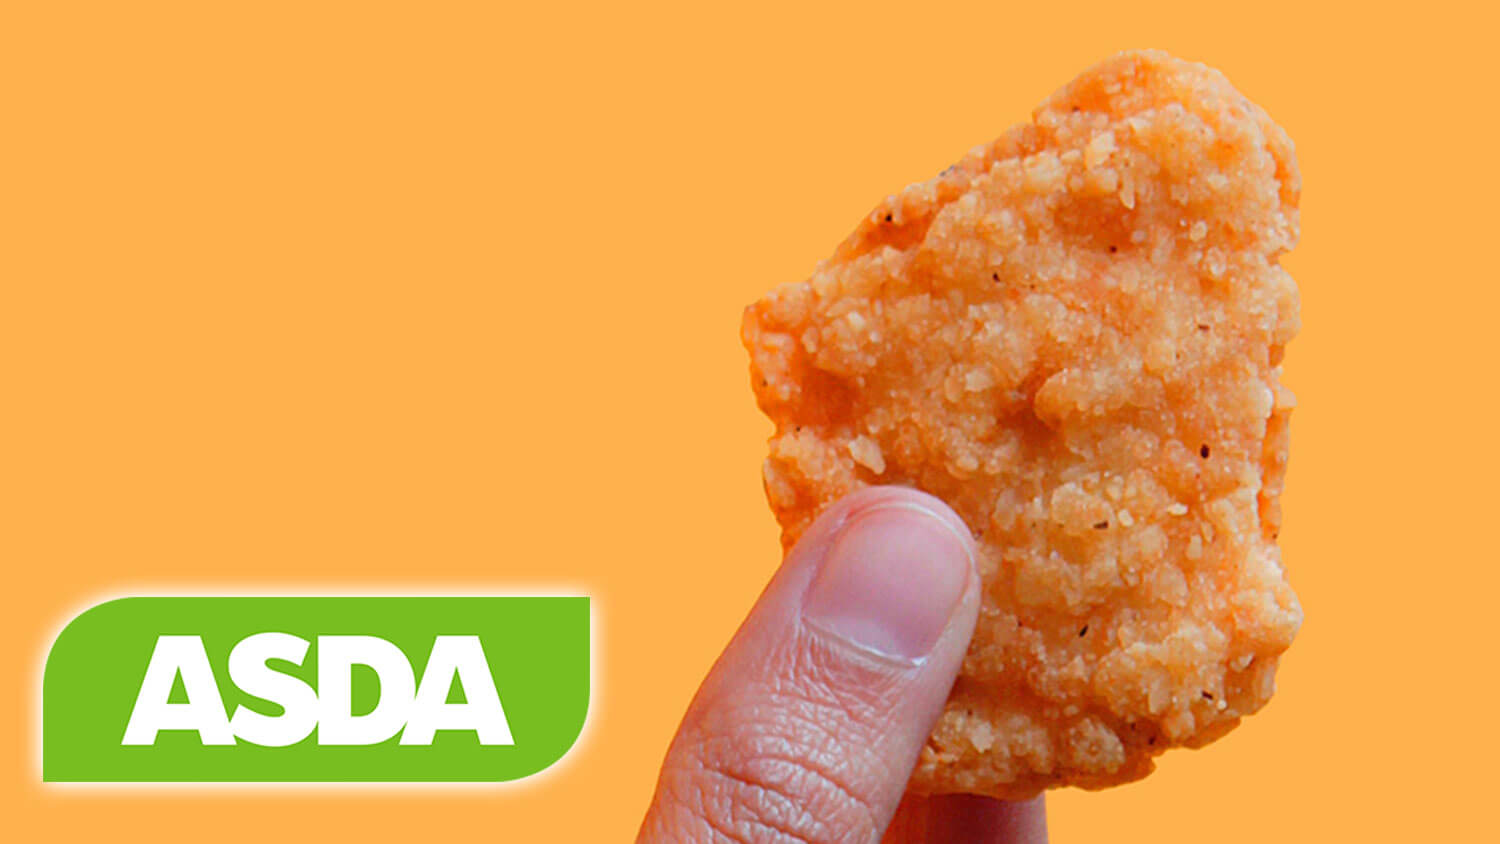 Asda Just Launched Vegan Nuggets That Taste Just Like Real Chicken